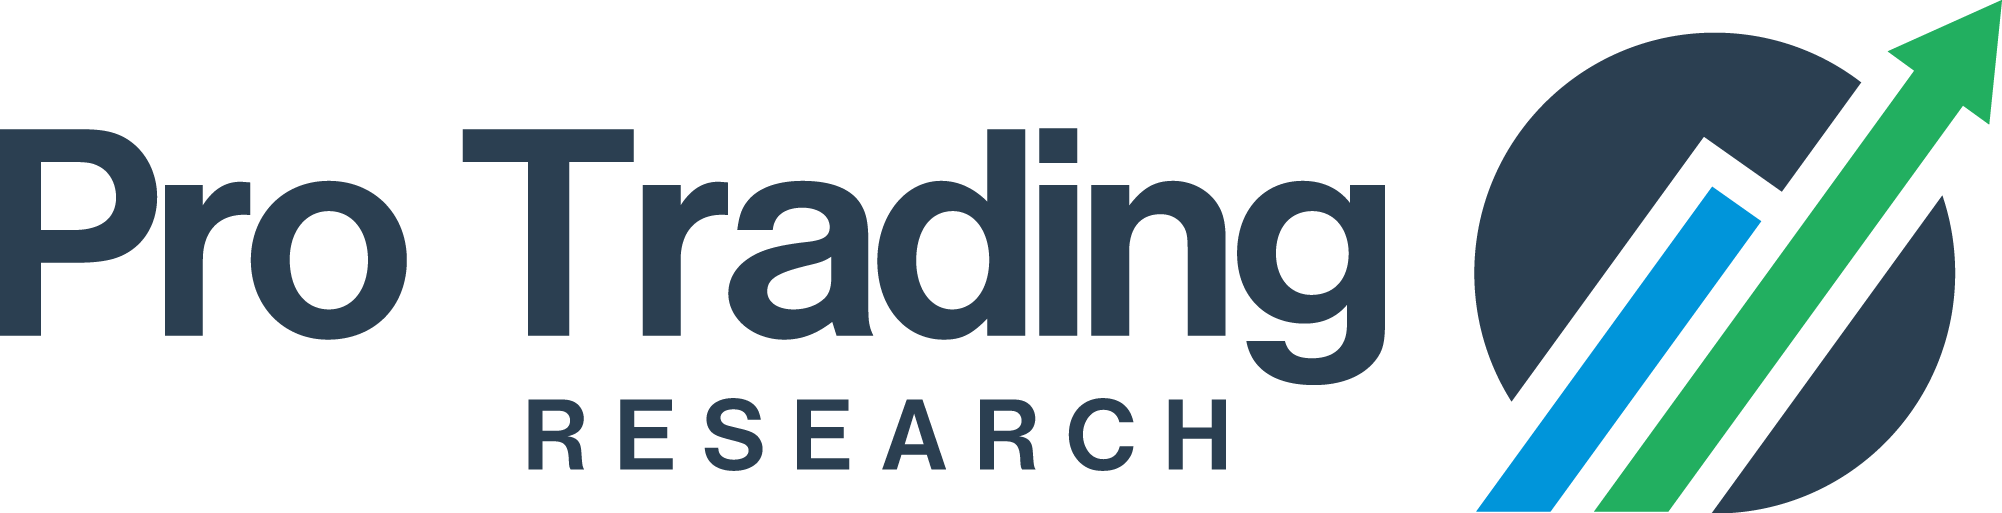 ProTradingResearch